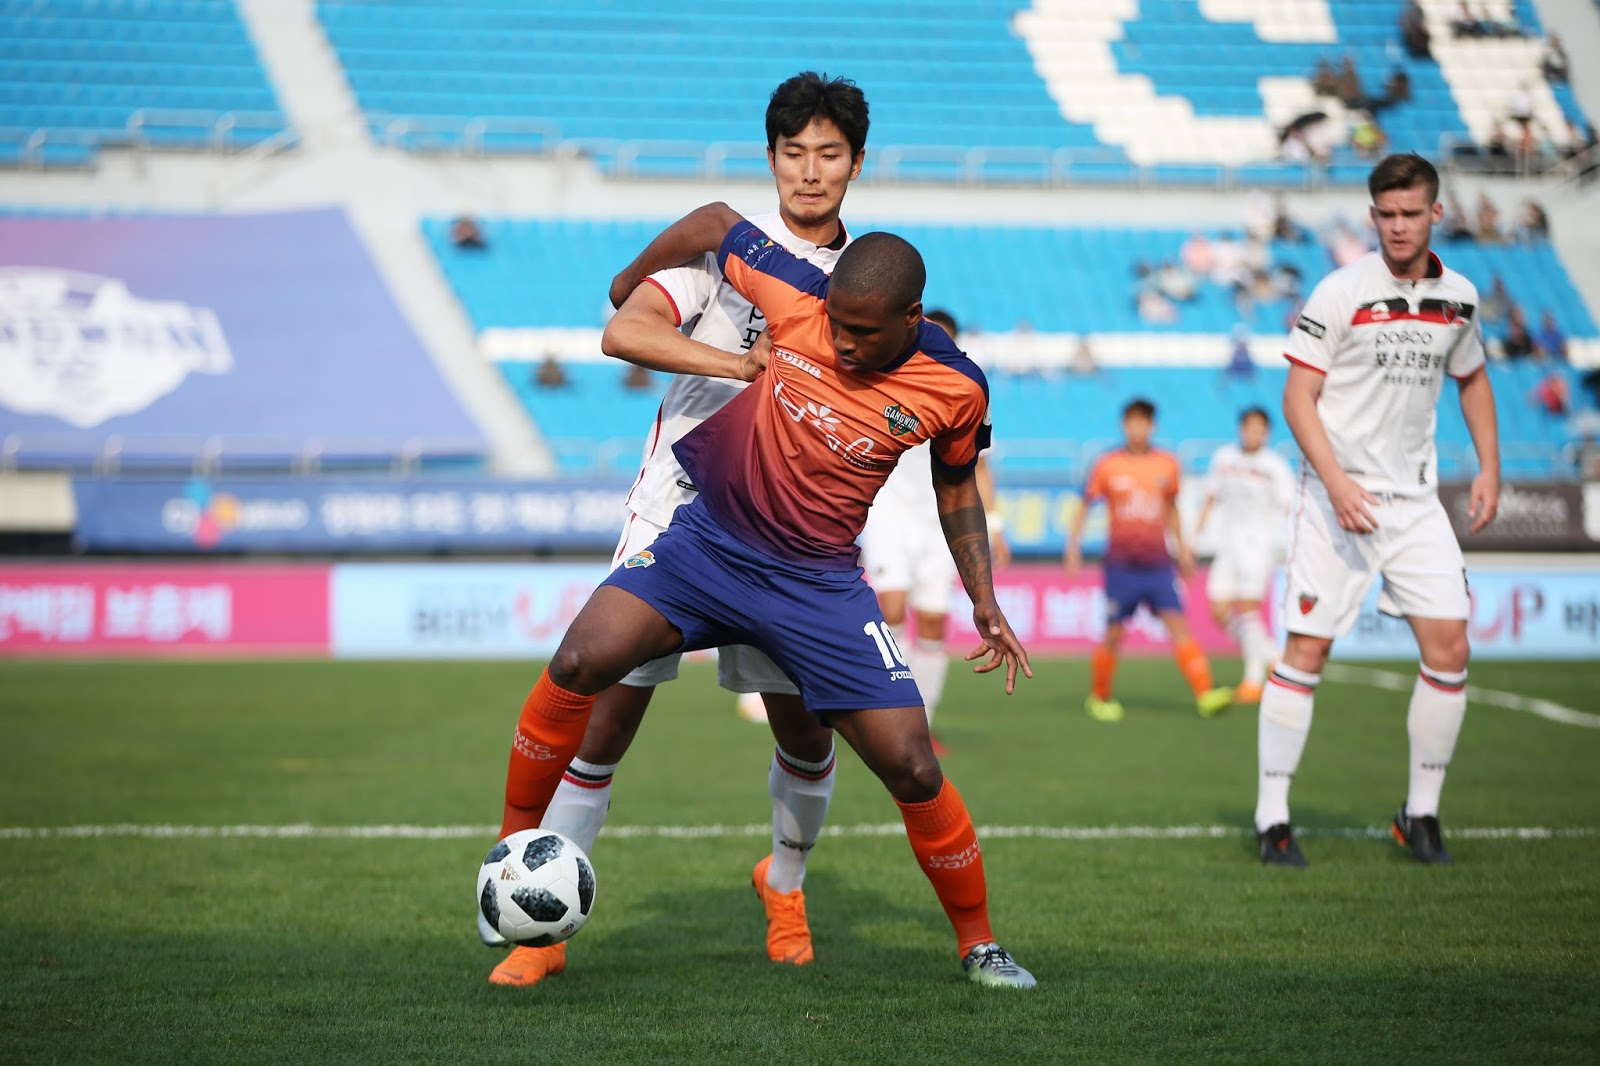 Preview: Gangwon FC Vs FC Seoul K League 1 Round 13